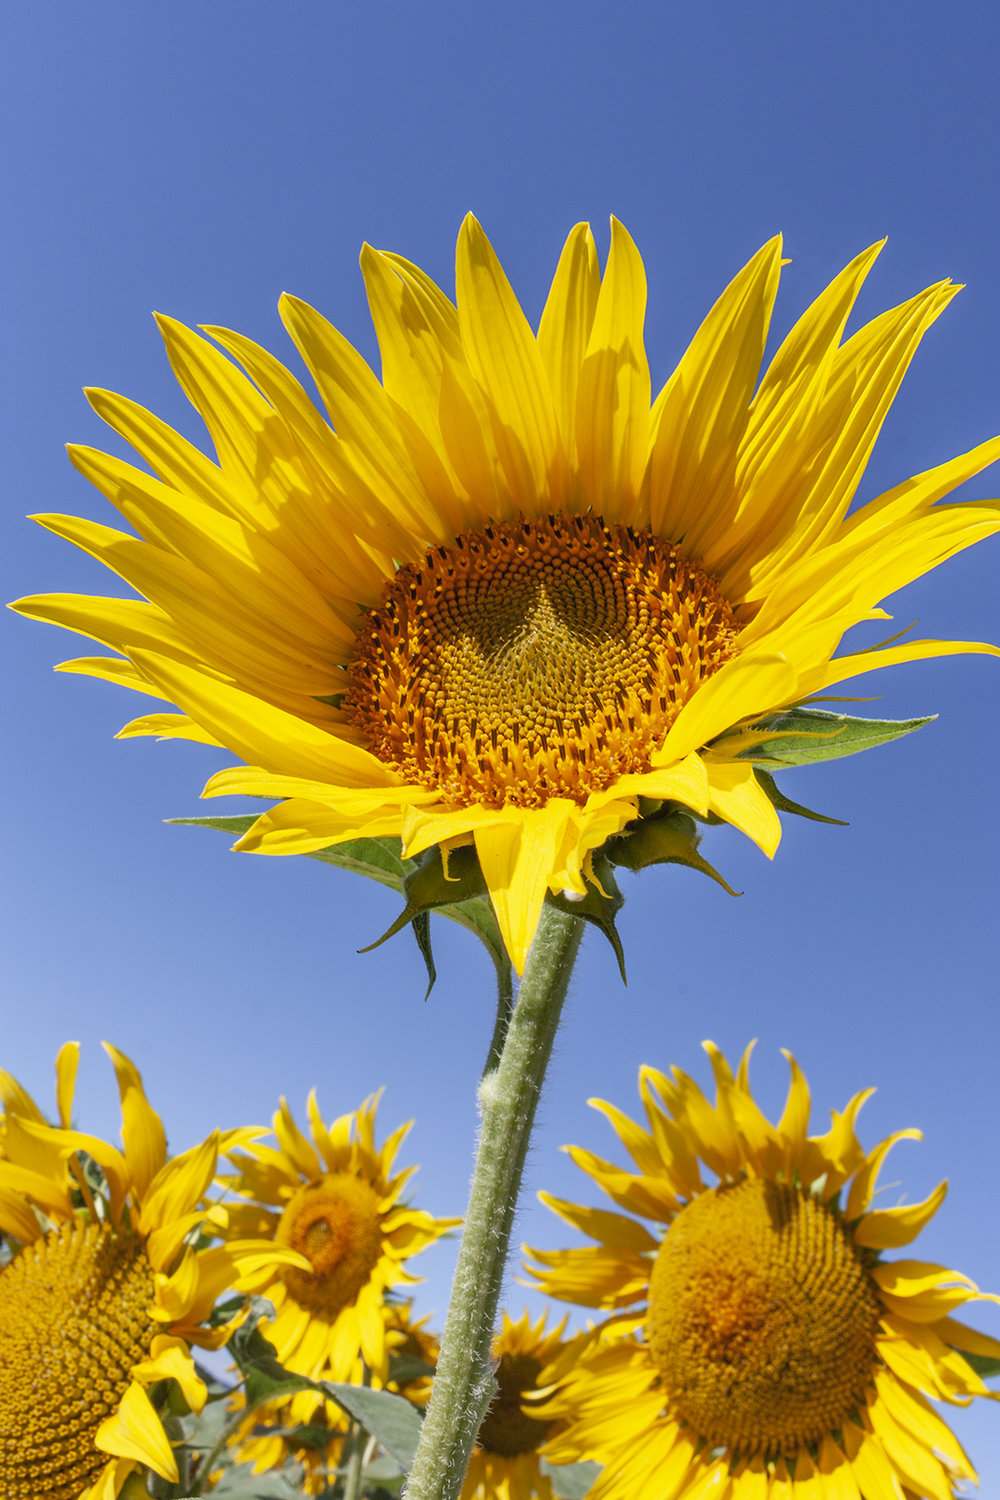 sunflowers_5.jpg